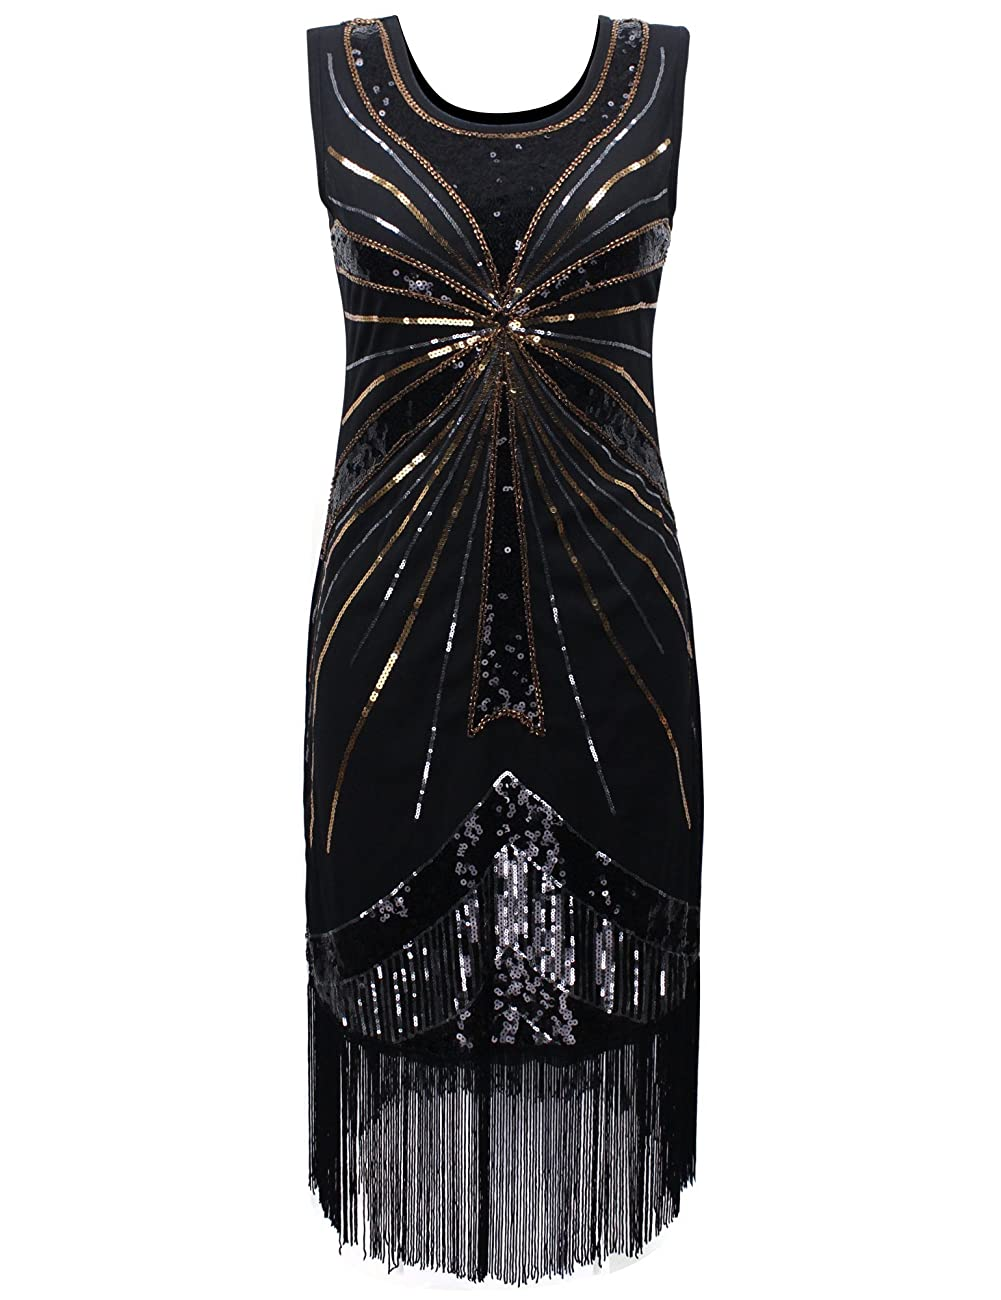 PrettyGuide Women's 1920s Vintage Beads Sequin Fireworks Fringed Flapper Gatsby Dress 0